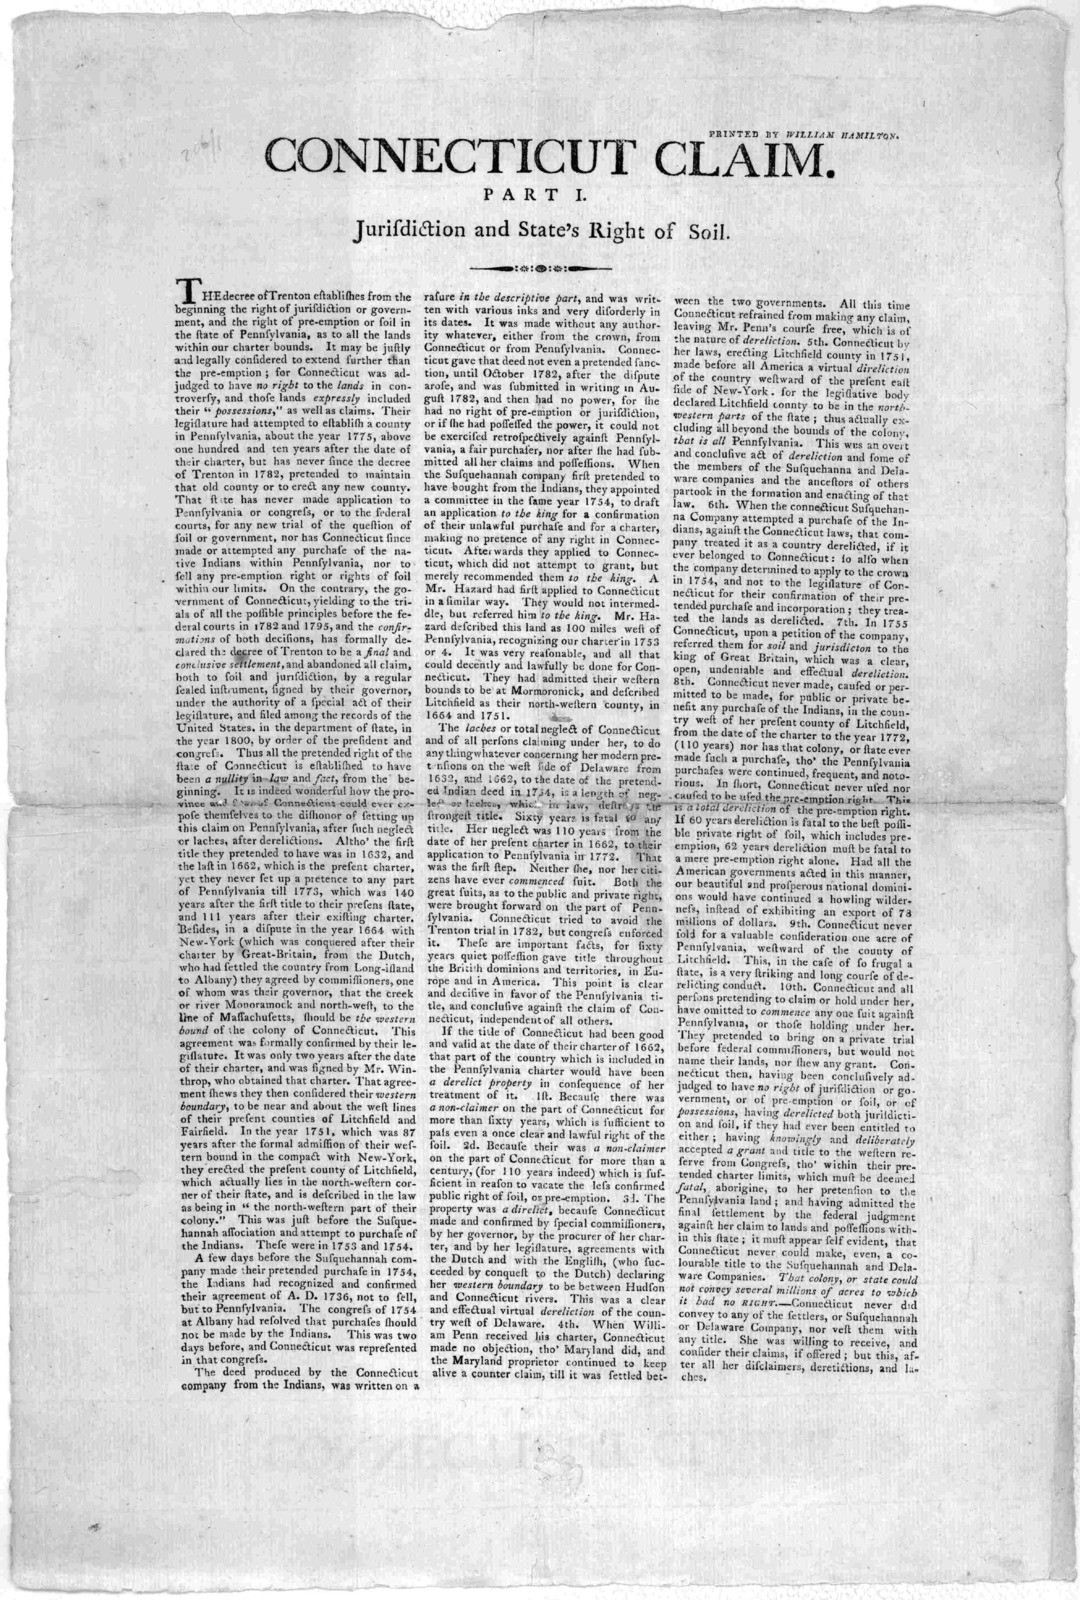 Connecticut claim. Part I. Jurisdiction and State's right of soil. [Lancaster, Pa.] Printed by William Hamilton [1801 or 2?].